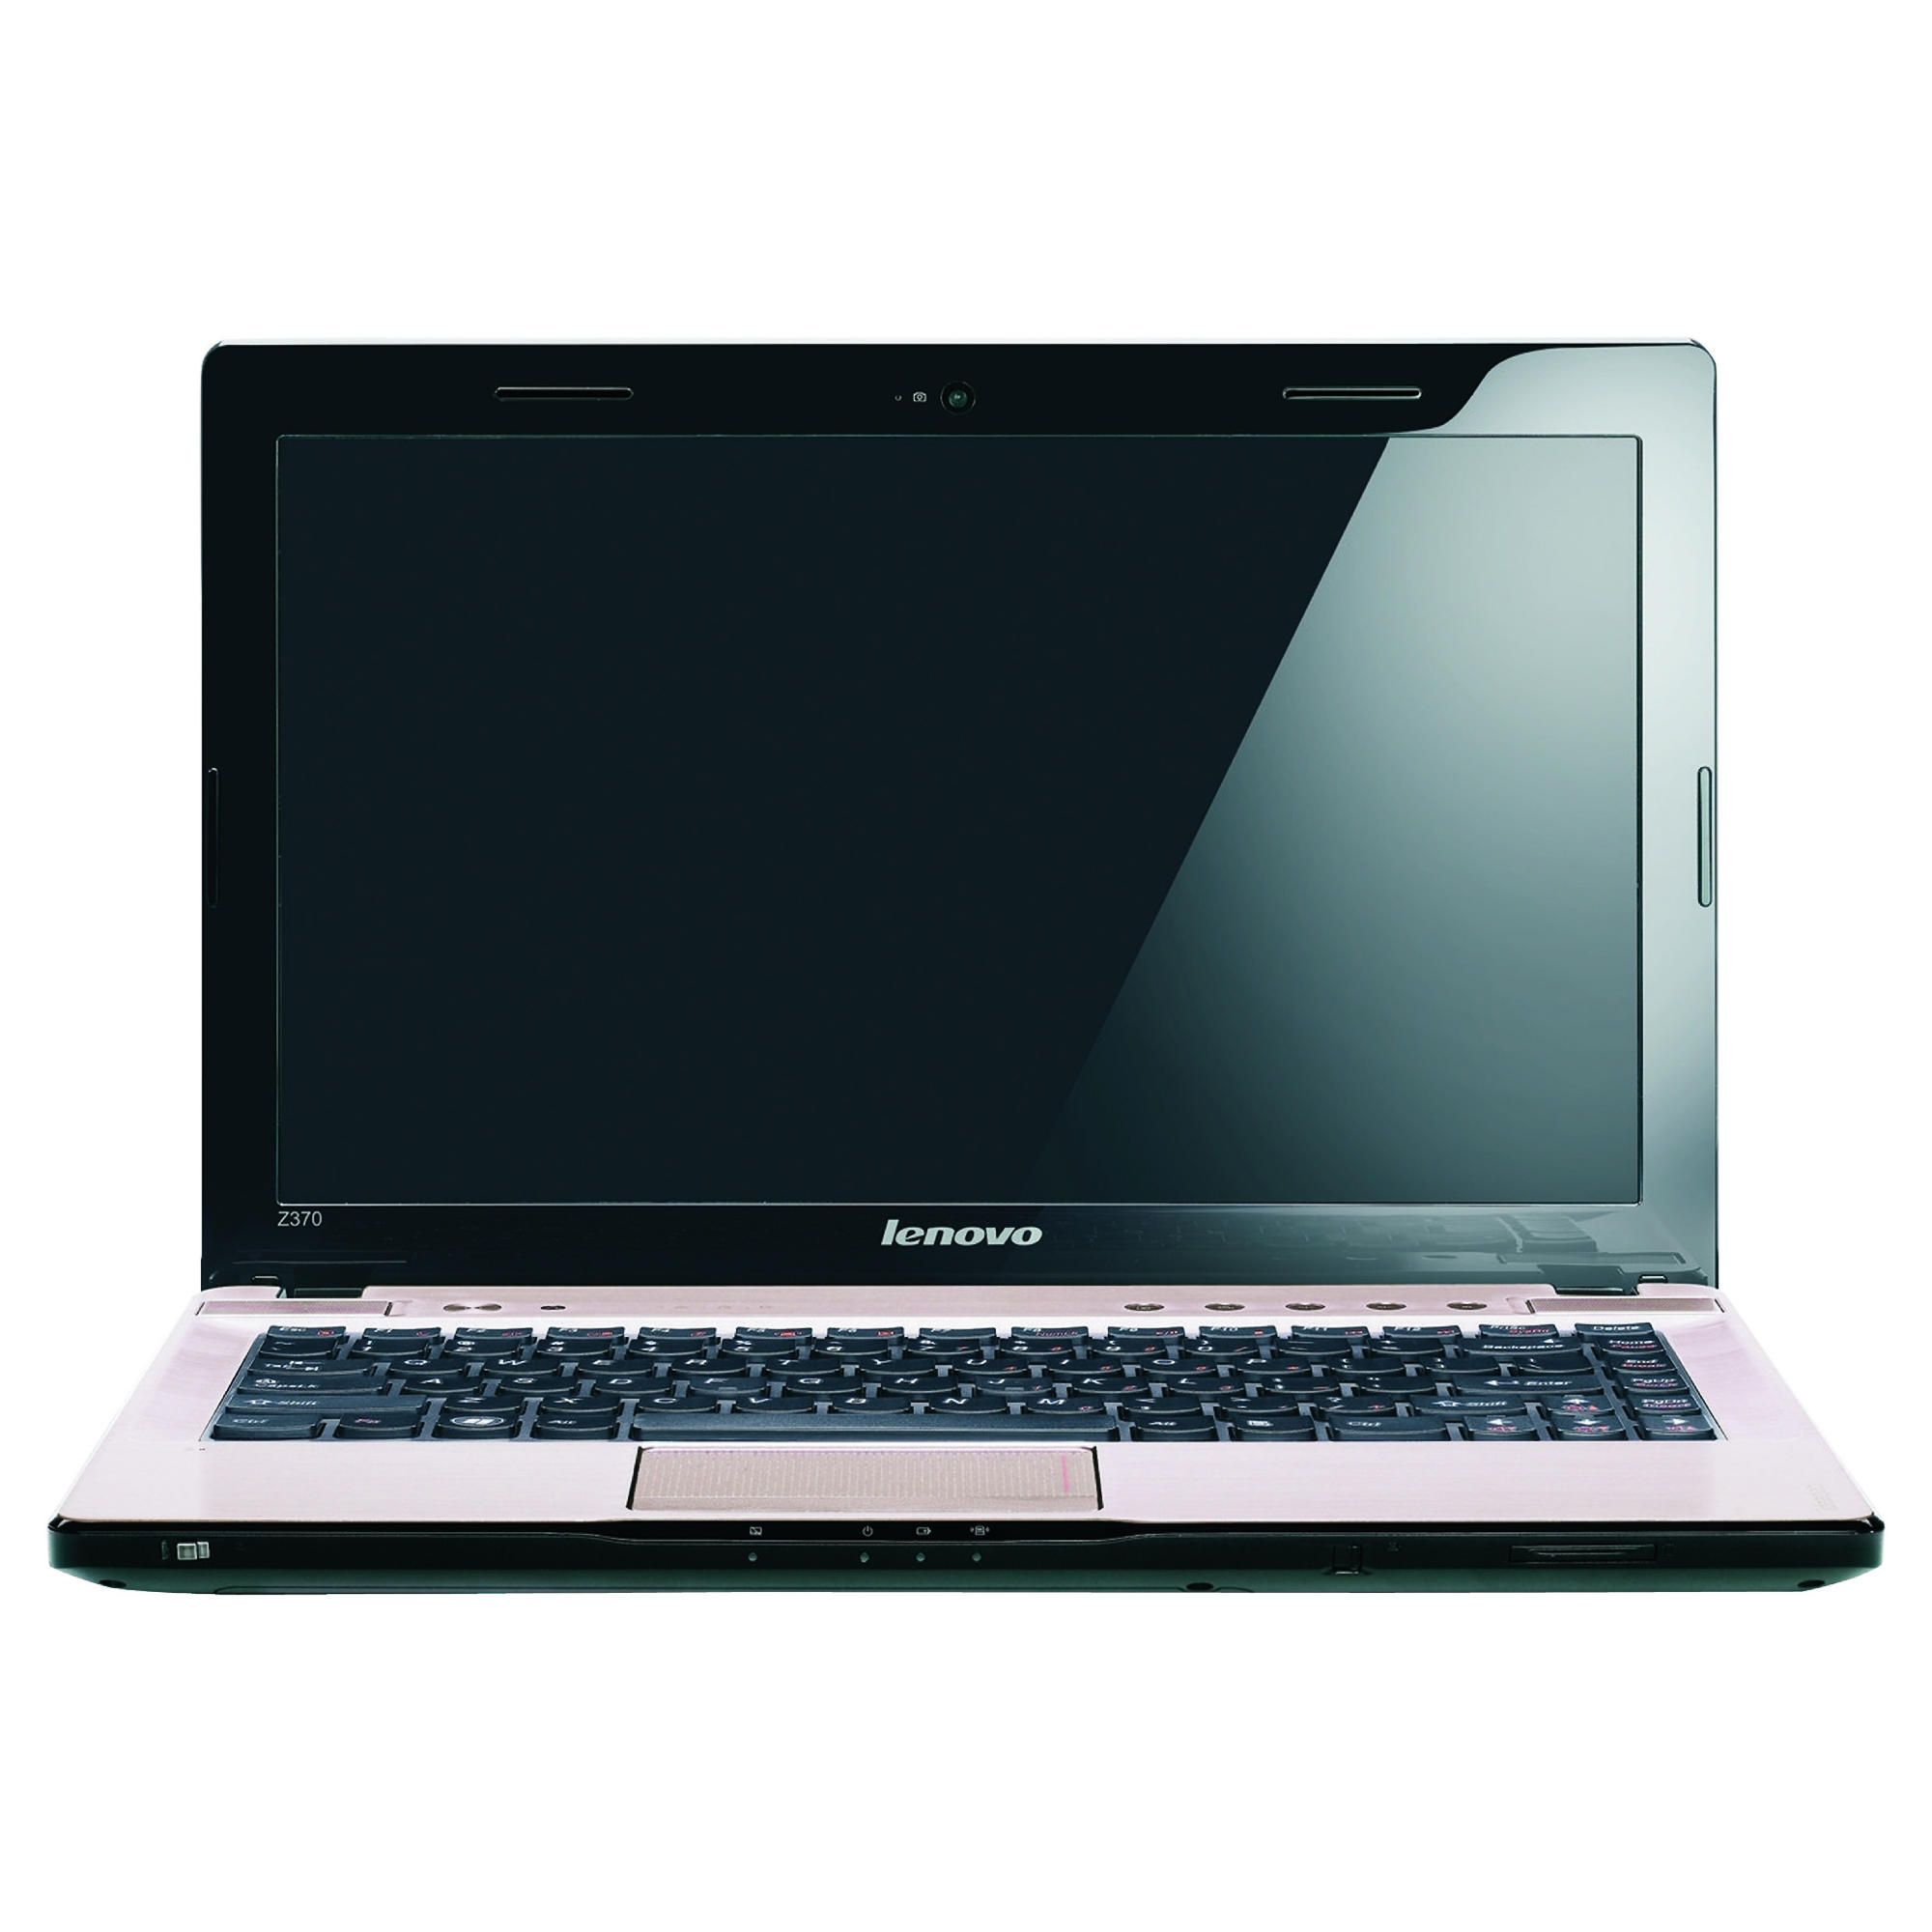 Lenovo Z370 Laptop (Intel Core i5, 4GB, 750GB, 13.3'' Display) Black/Silver at Tescos Direct